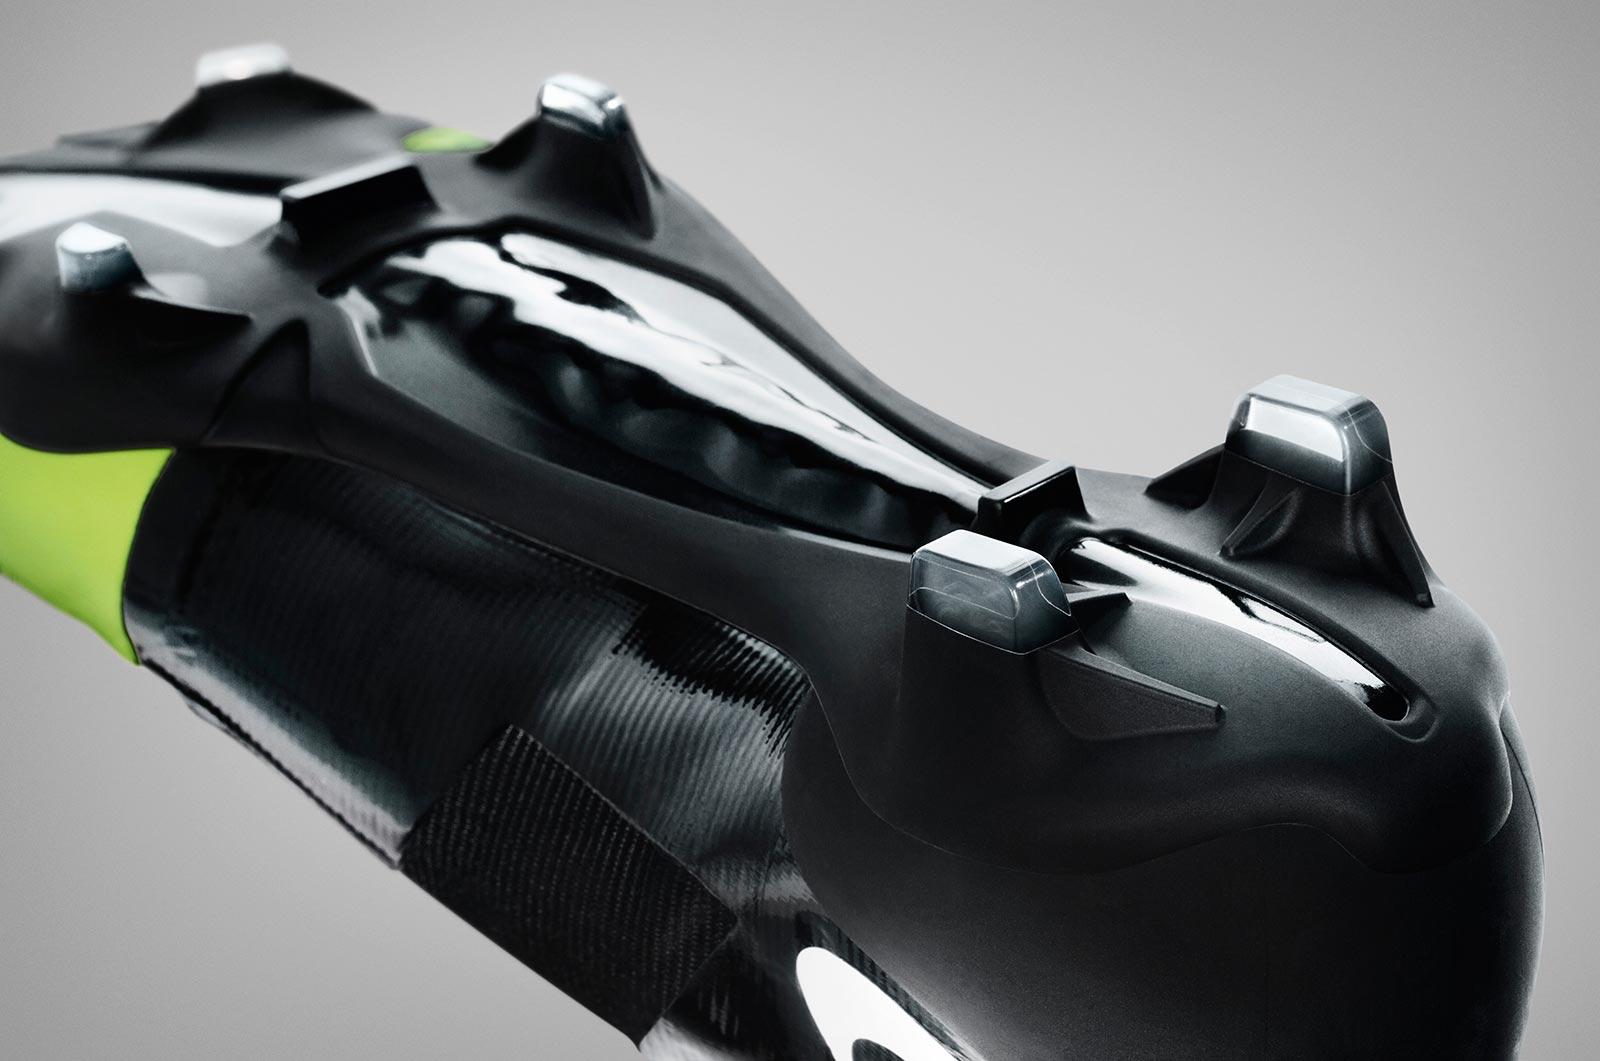 remake-boots-leaked-nike-gs-2012-football-boots-closer-look (8)